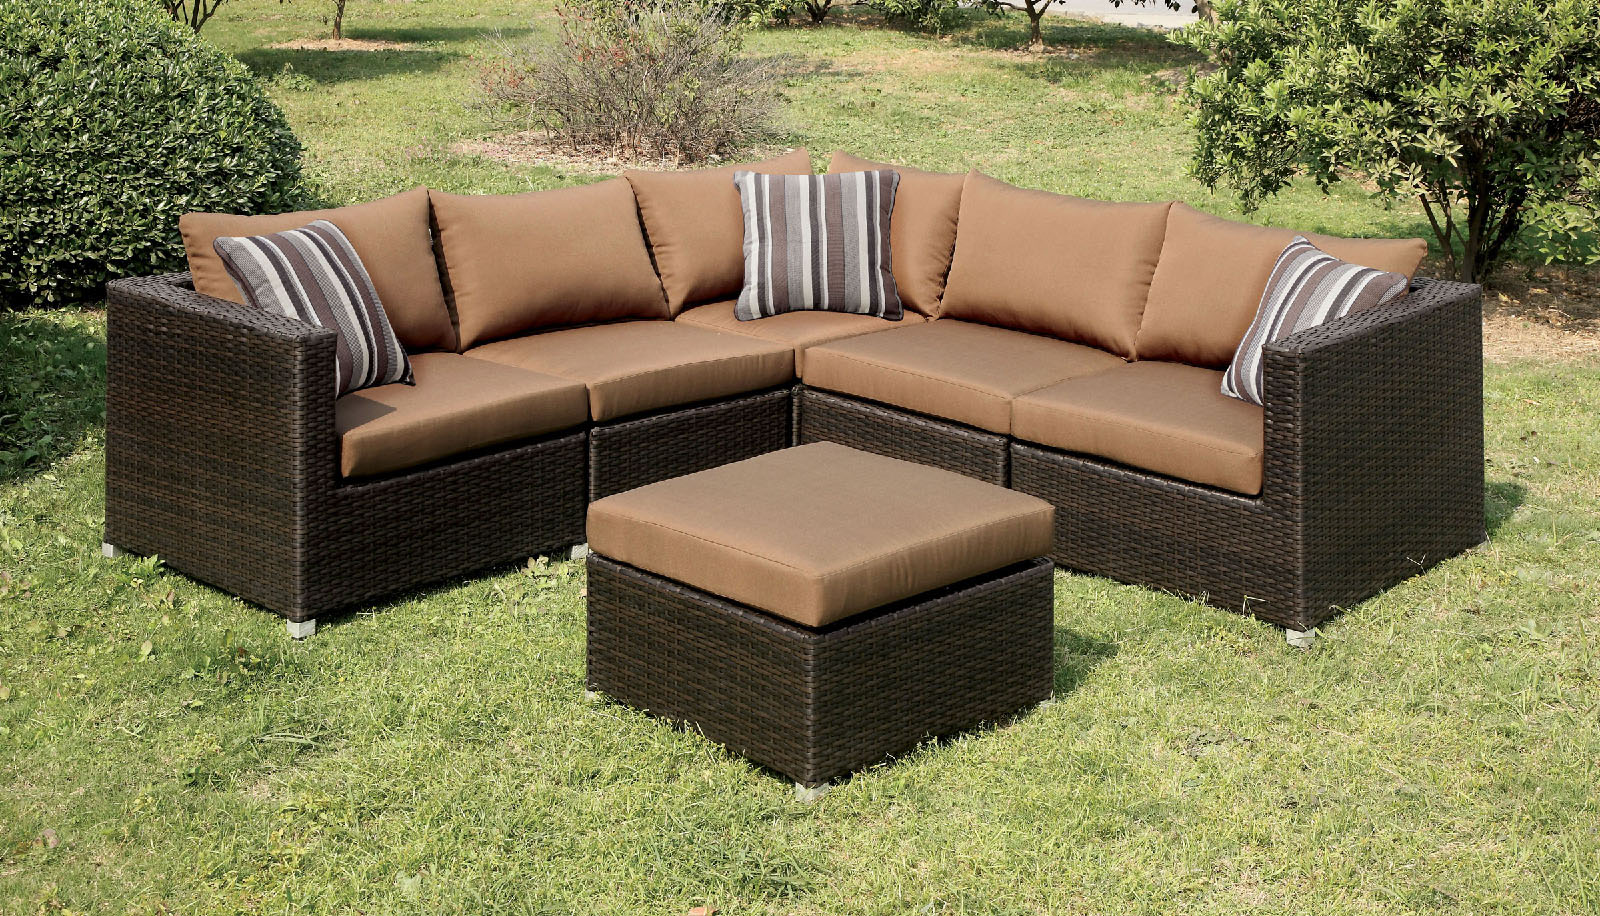 Abion patio set by furniture of america cm os1821br for Furniture of america dallas texas